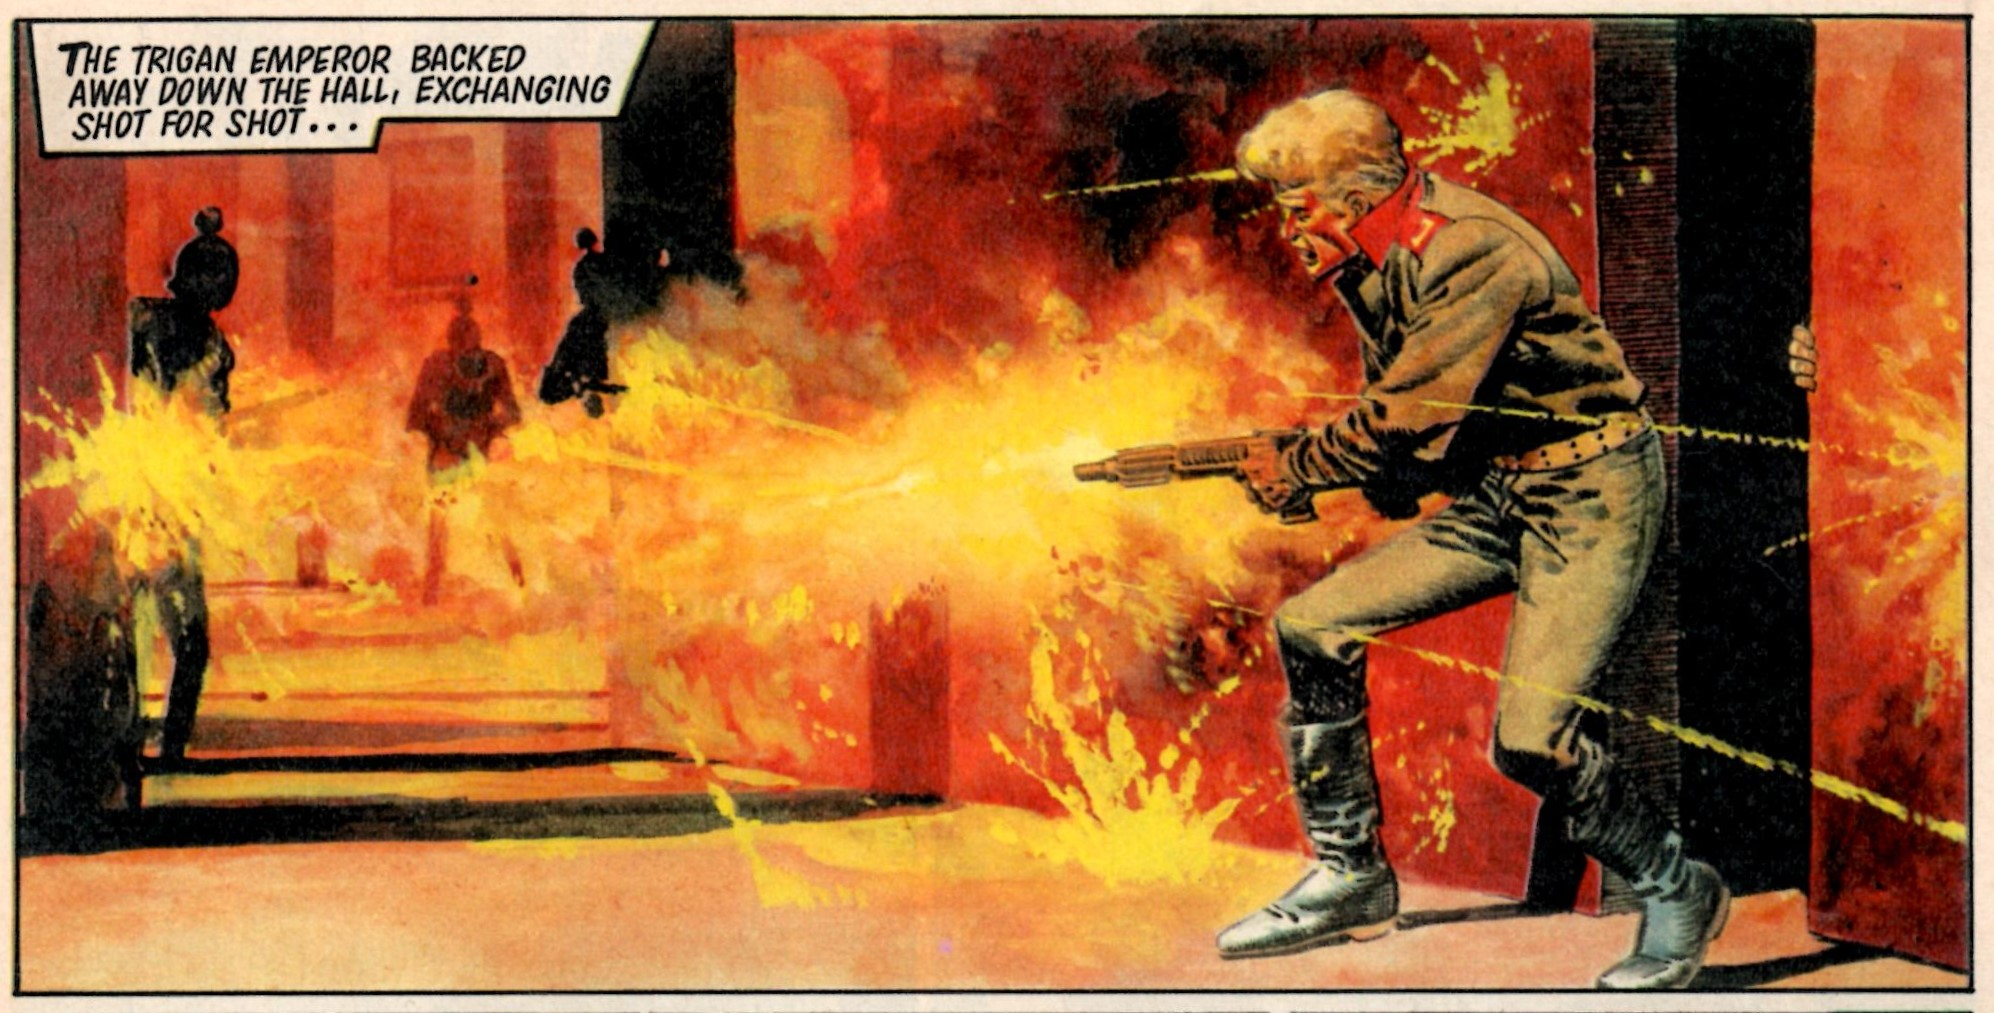 The Trigan Empire: Mike Butterworth (writer), Don Lawrence (artist); reprinted from Look and Learn